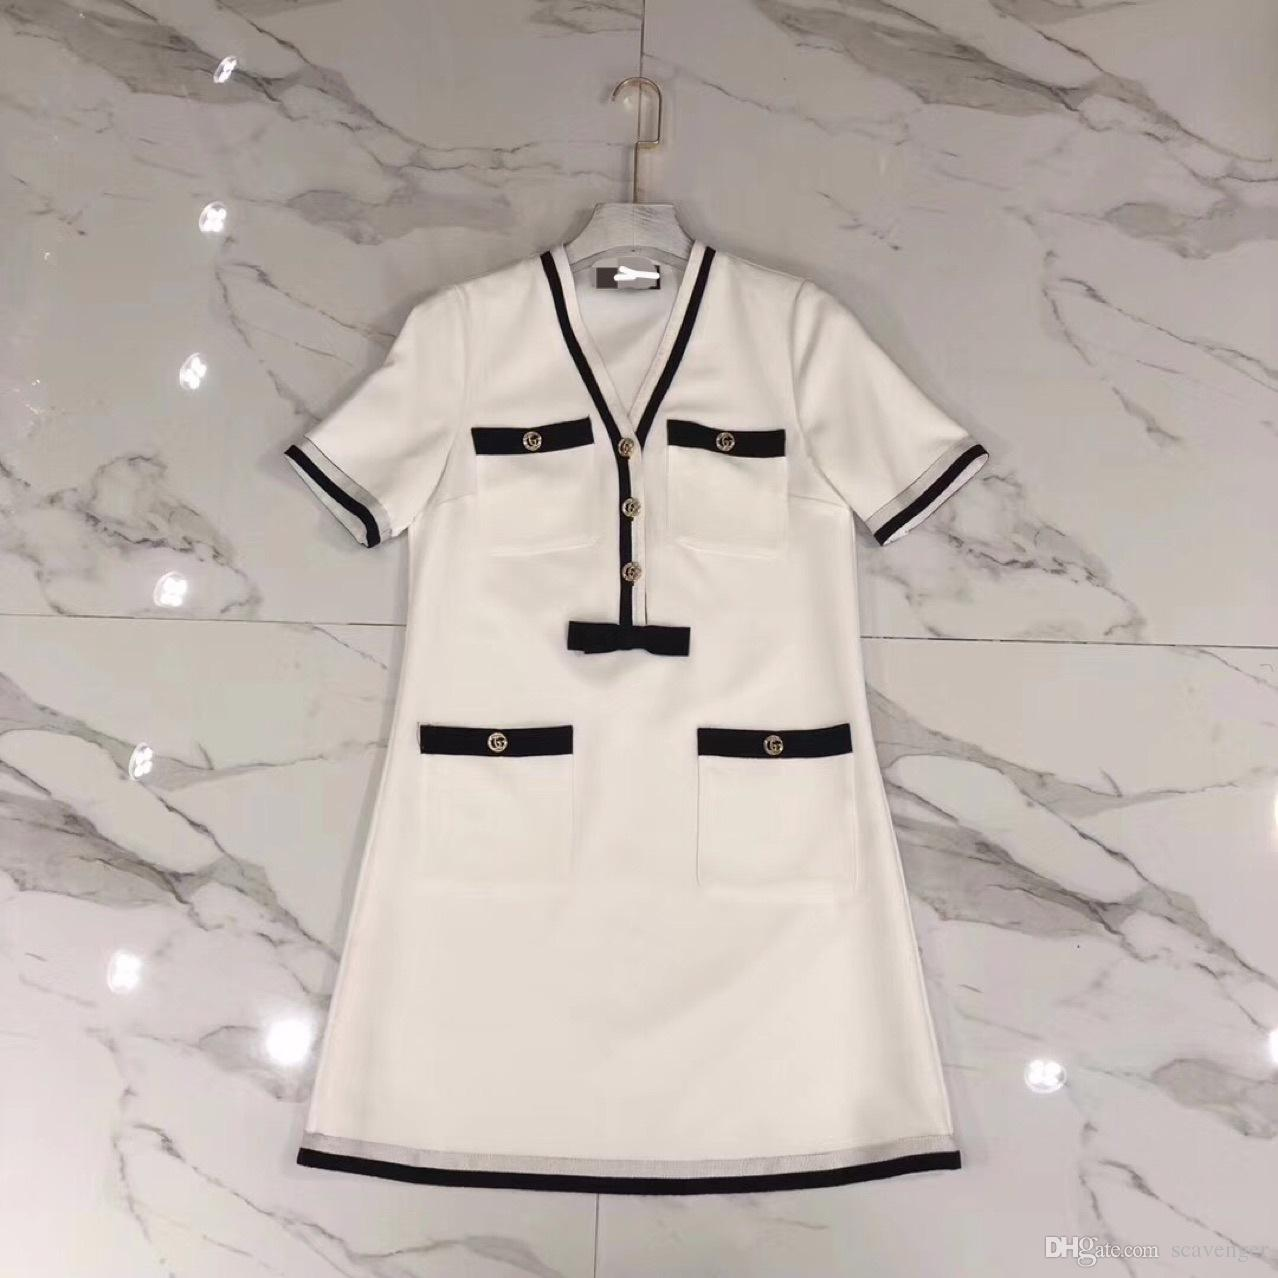 High - end women's black-and-white gold standard contrast color large v - neck short sleeve dress women's net color dress new summer 2018